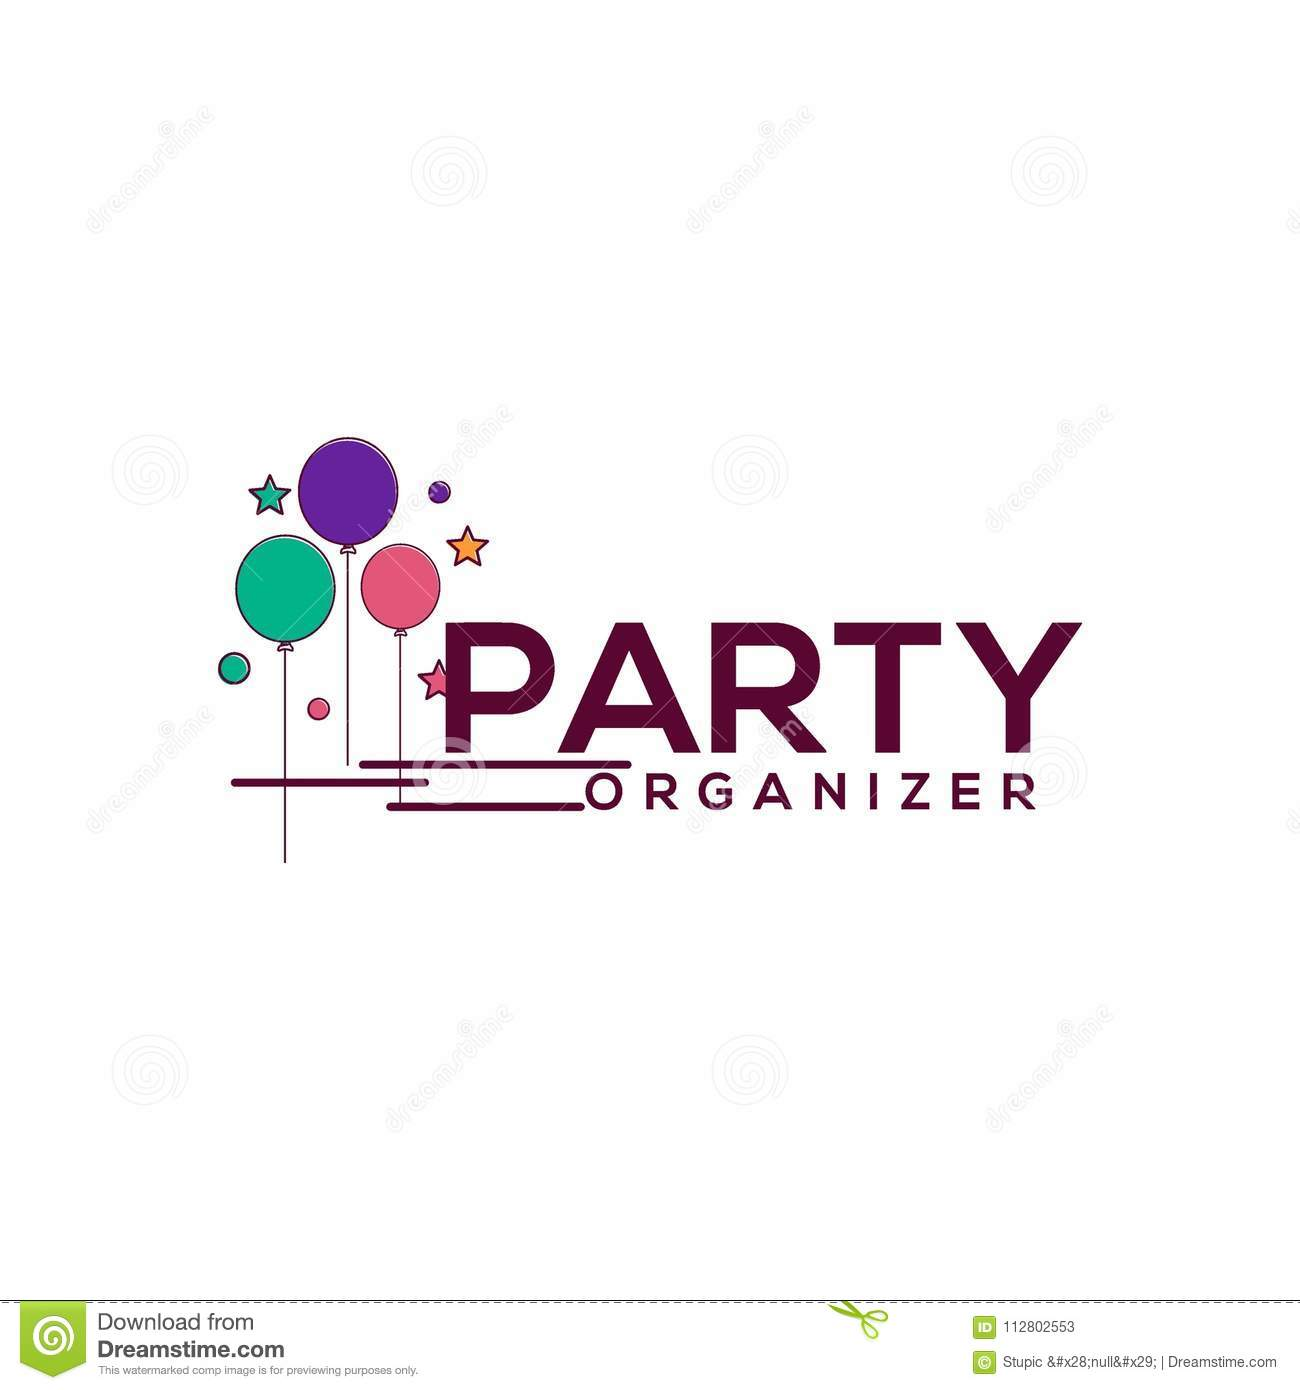 creative party logo design vector art logo stock illustration illustration of abstract decoration 112802553 https www dreamstime com creative party logo design various used purposed just you great people creative party logo design vector art logo image112802553